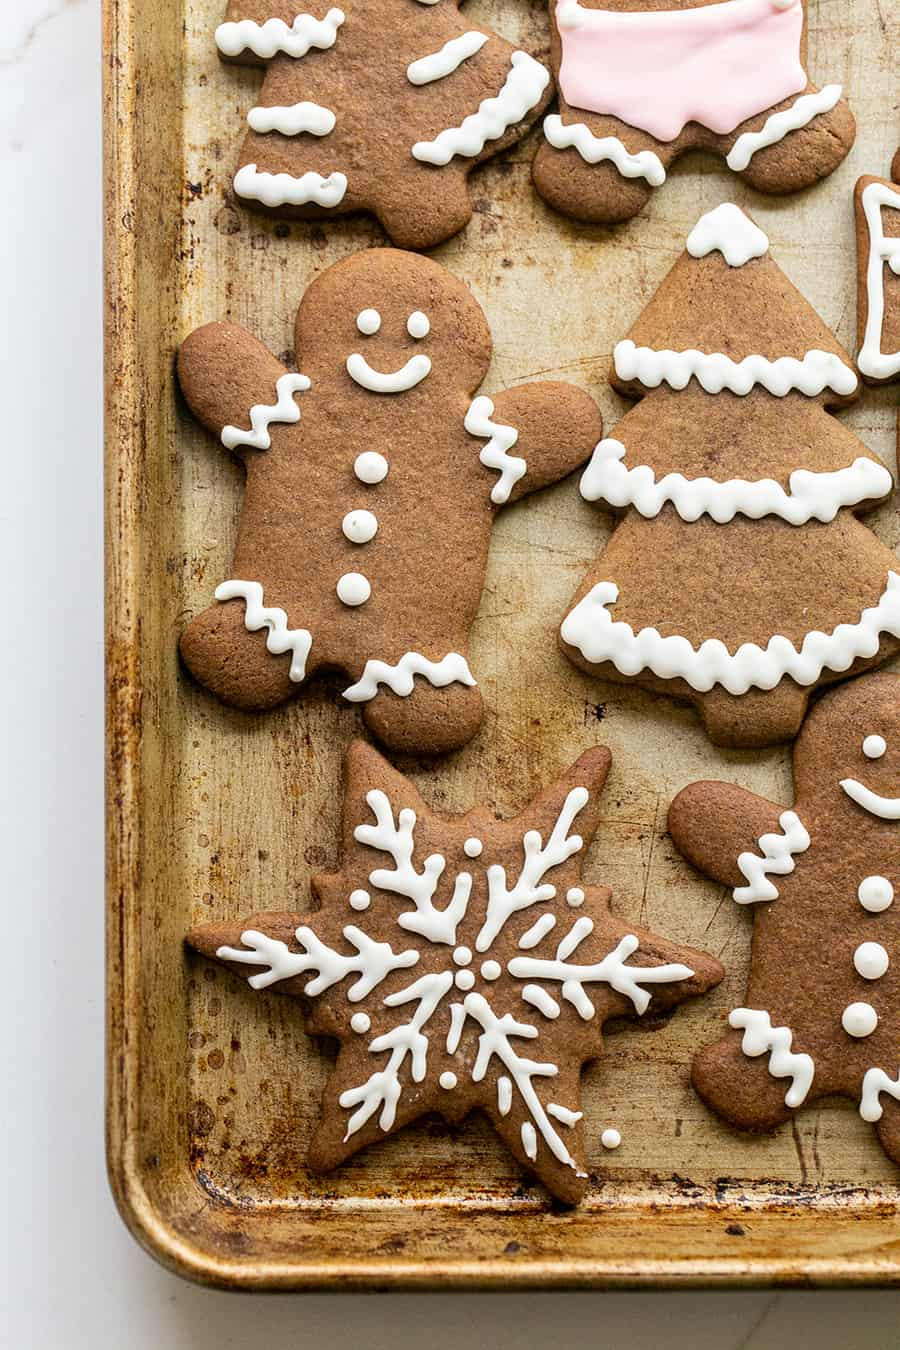 Gingerbread cookies on a baking sheet